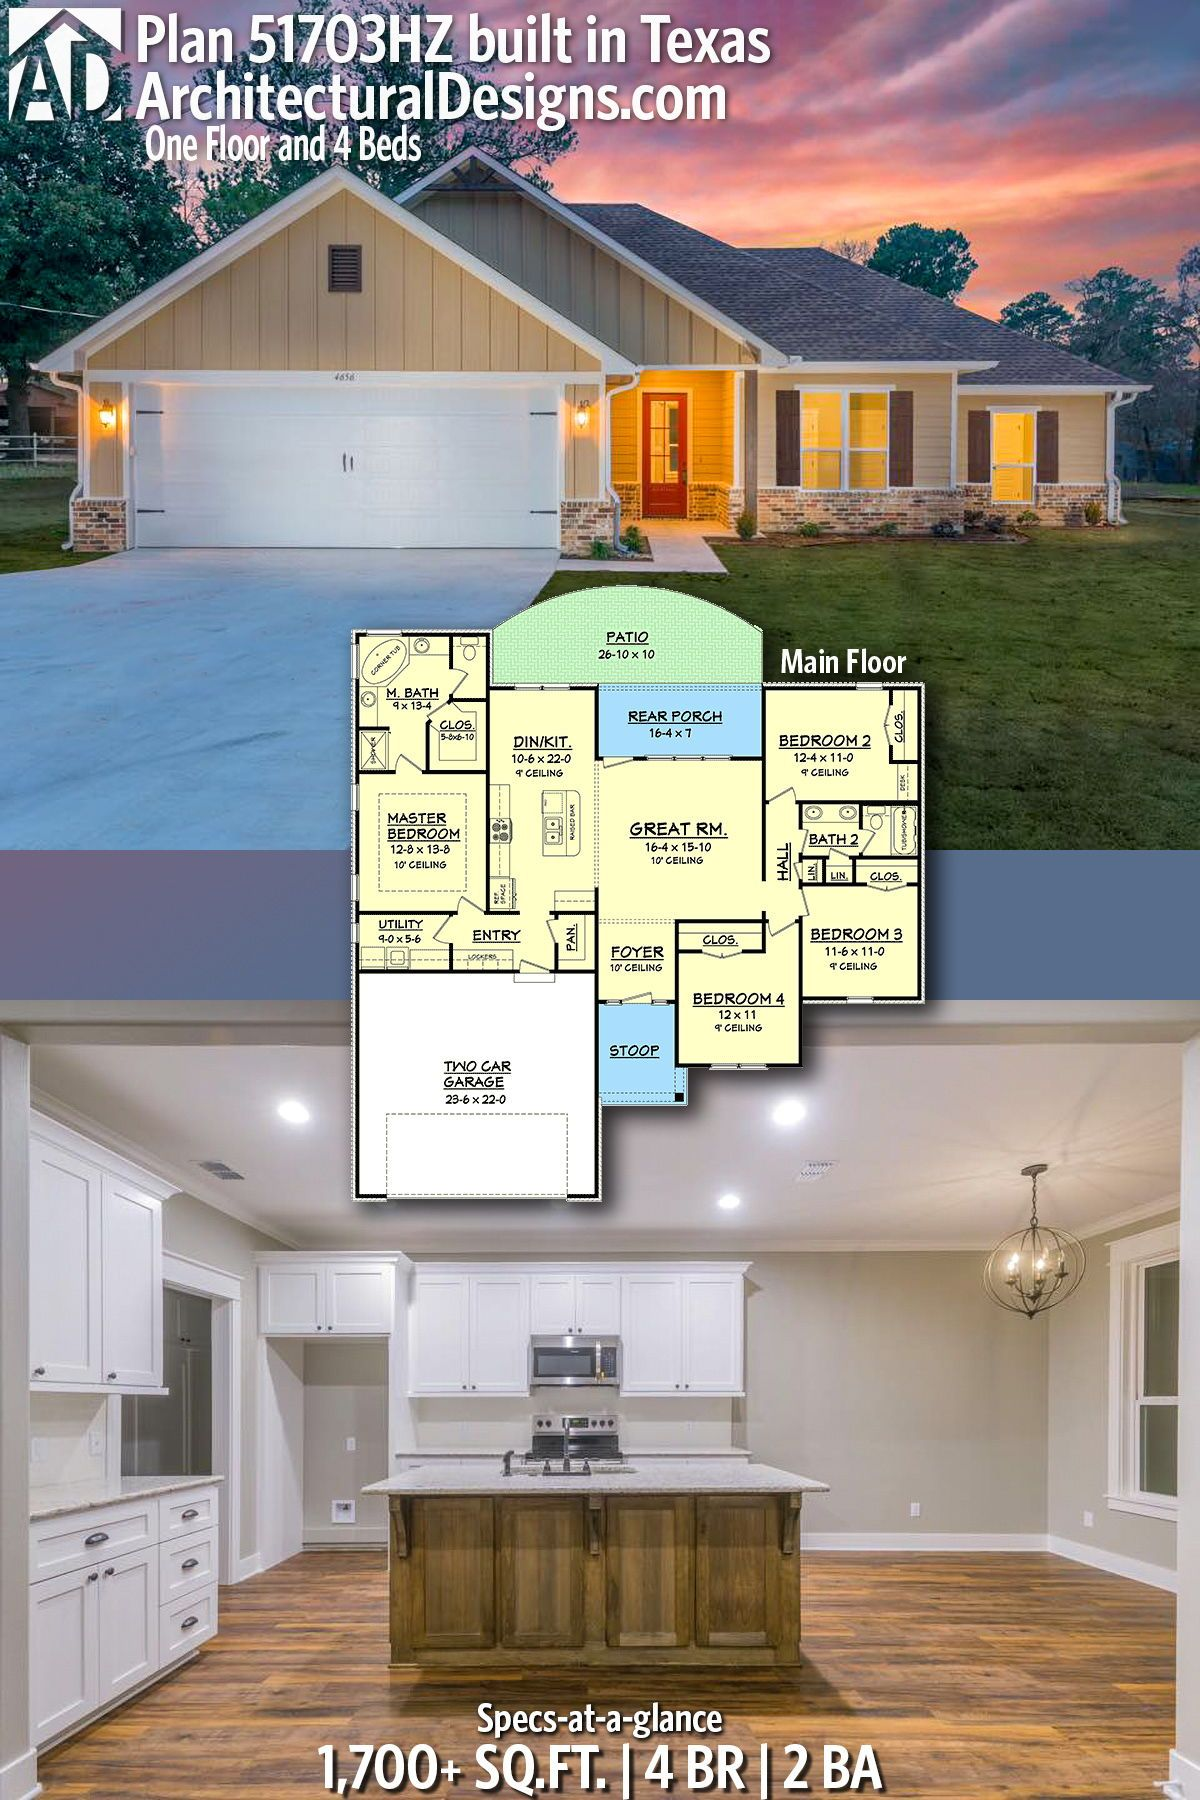 Plan 51703hz One Floor And 4 Beds 4 Bedroom House Plans Architecture Design Bedroom House Plans